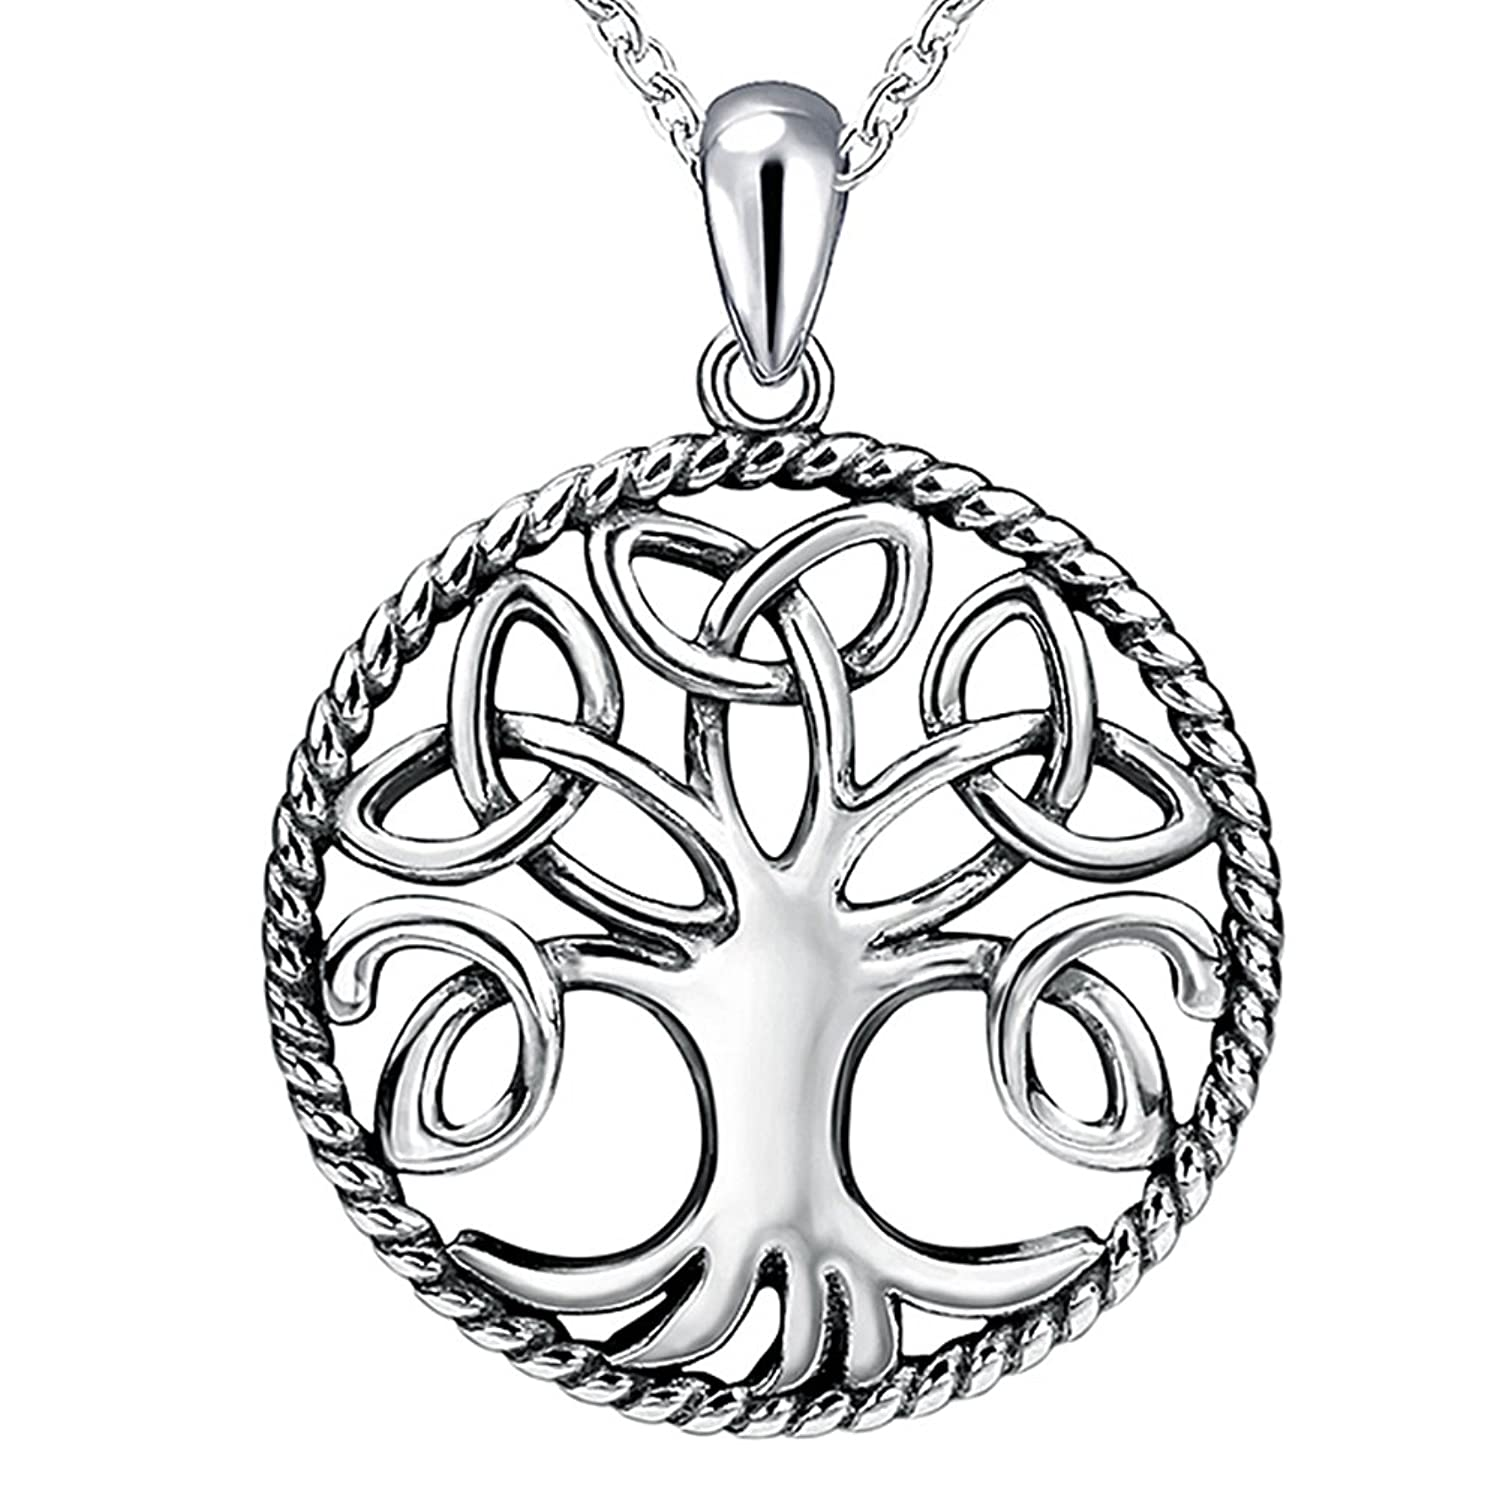 Apotie 925 sterling silver Double Love Heart Tree of Life Round Shape Pandant Necklace with White Cubic Zirconia for Women Chain 18'' j1xwAi